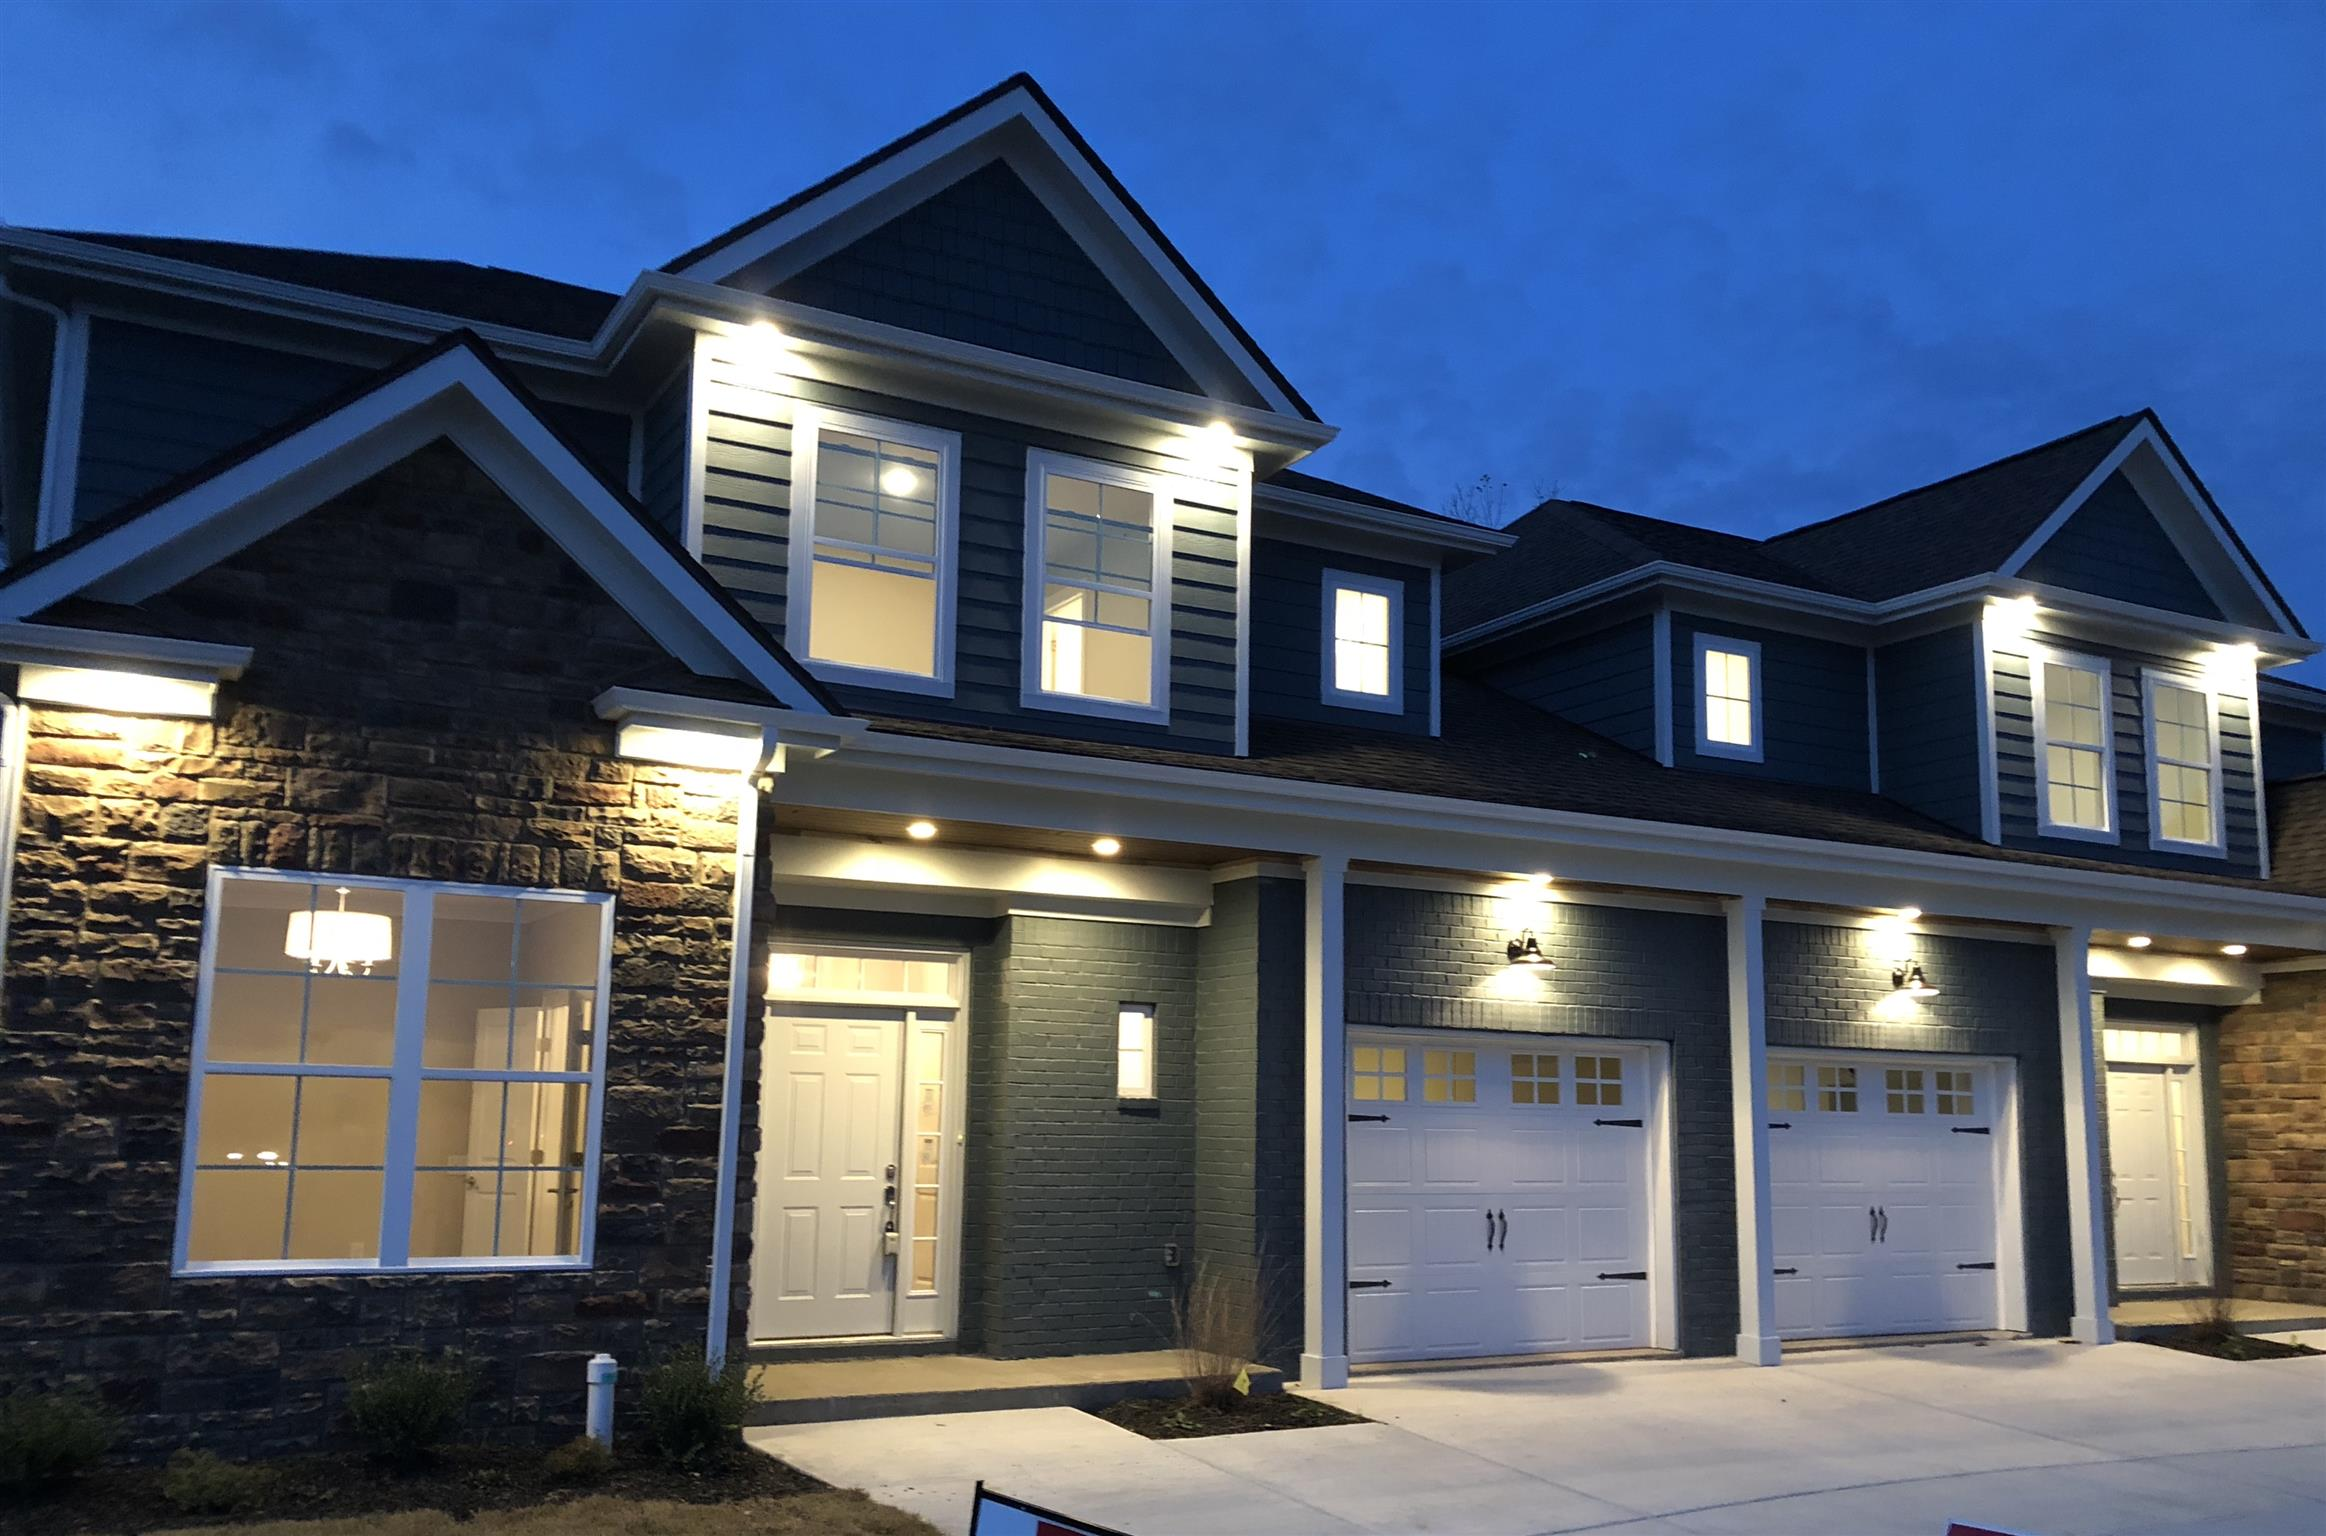 113 Bellagio Villas Drive, Spring Hill, TN 37174 - Spring Hill, TN real estate listing